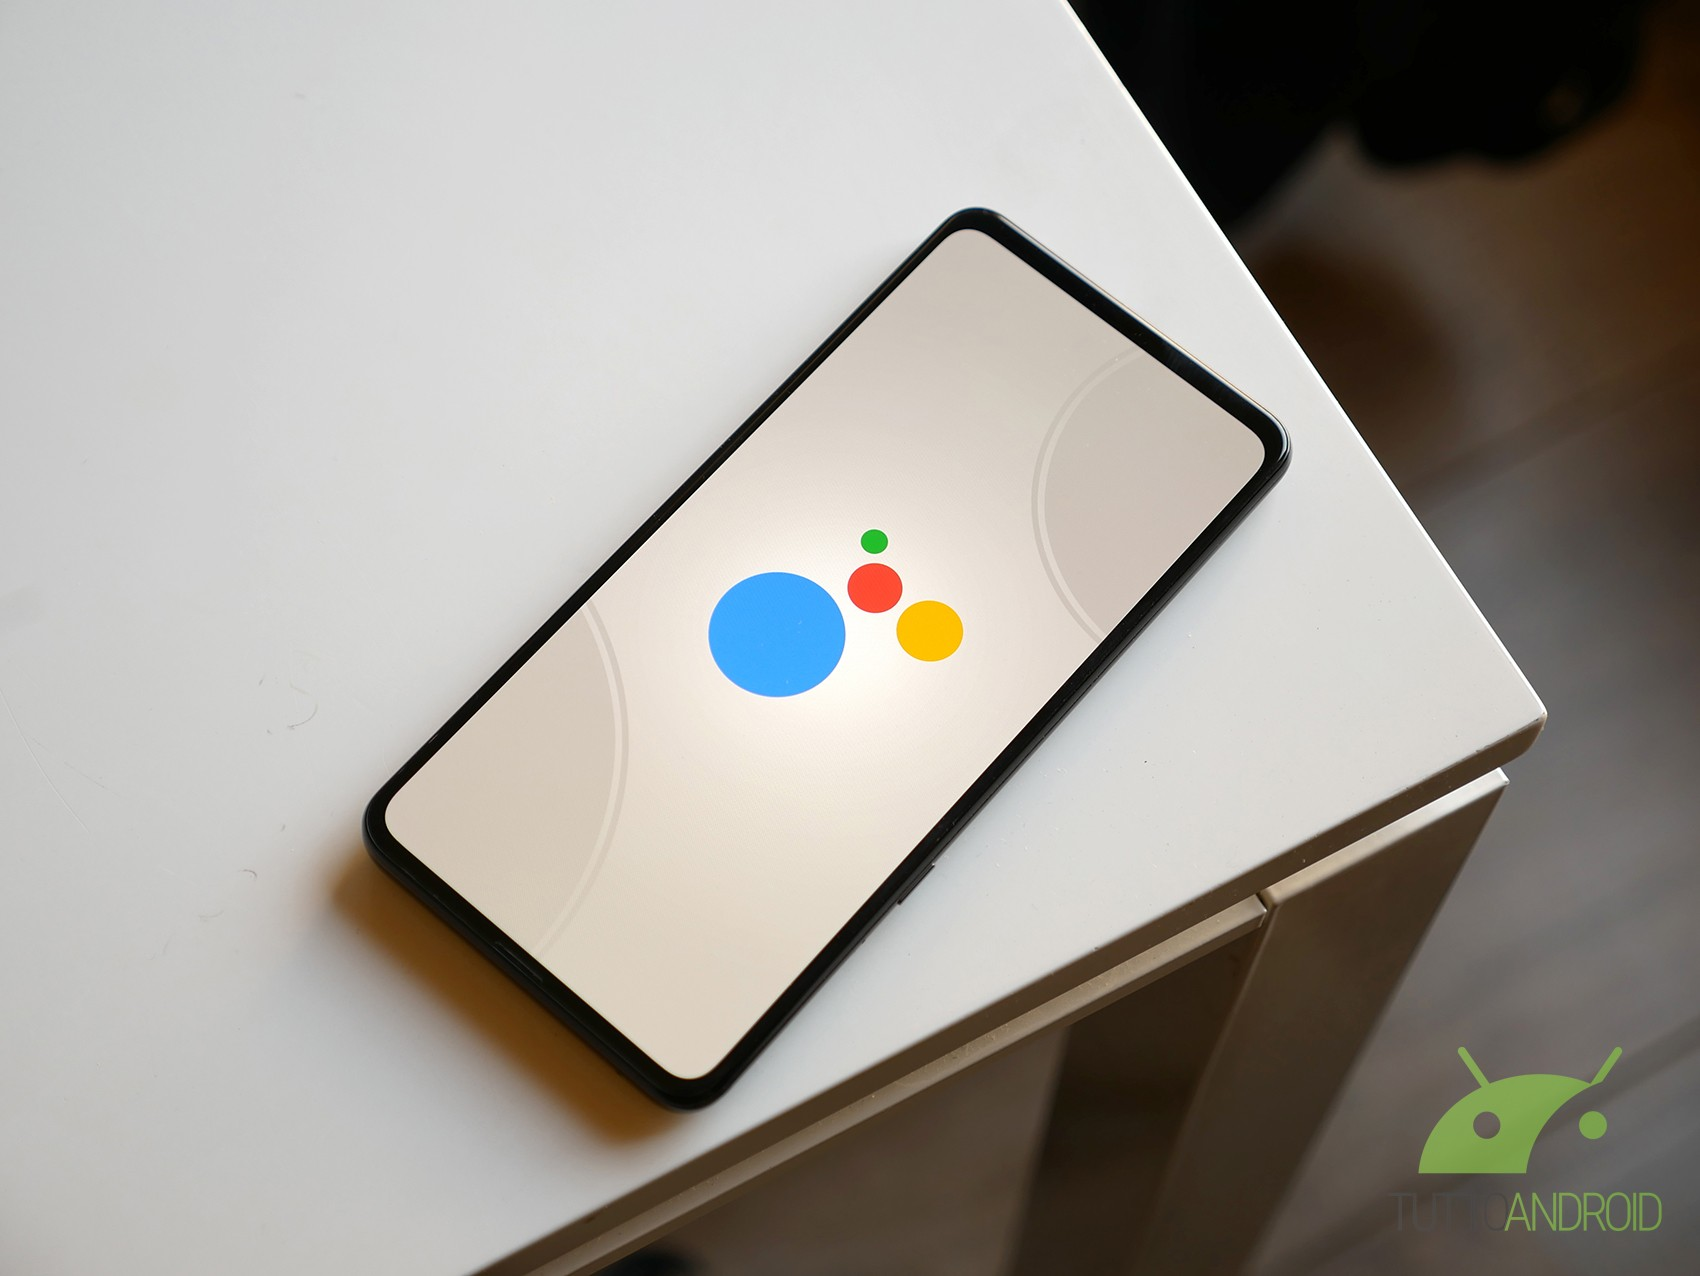 L'Ambient Mode di Google Assistant in fase di timido roll ou